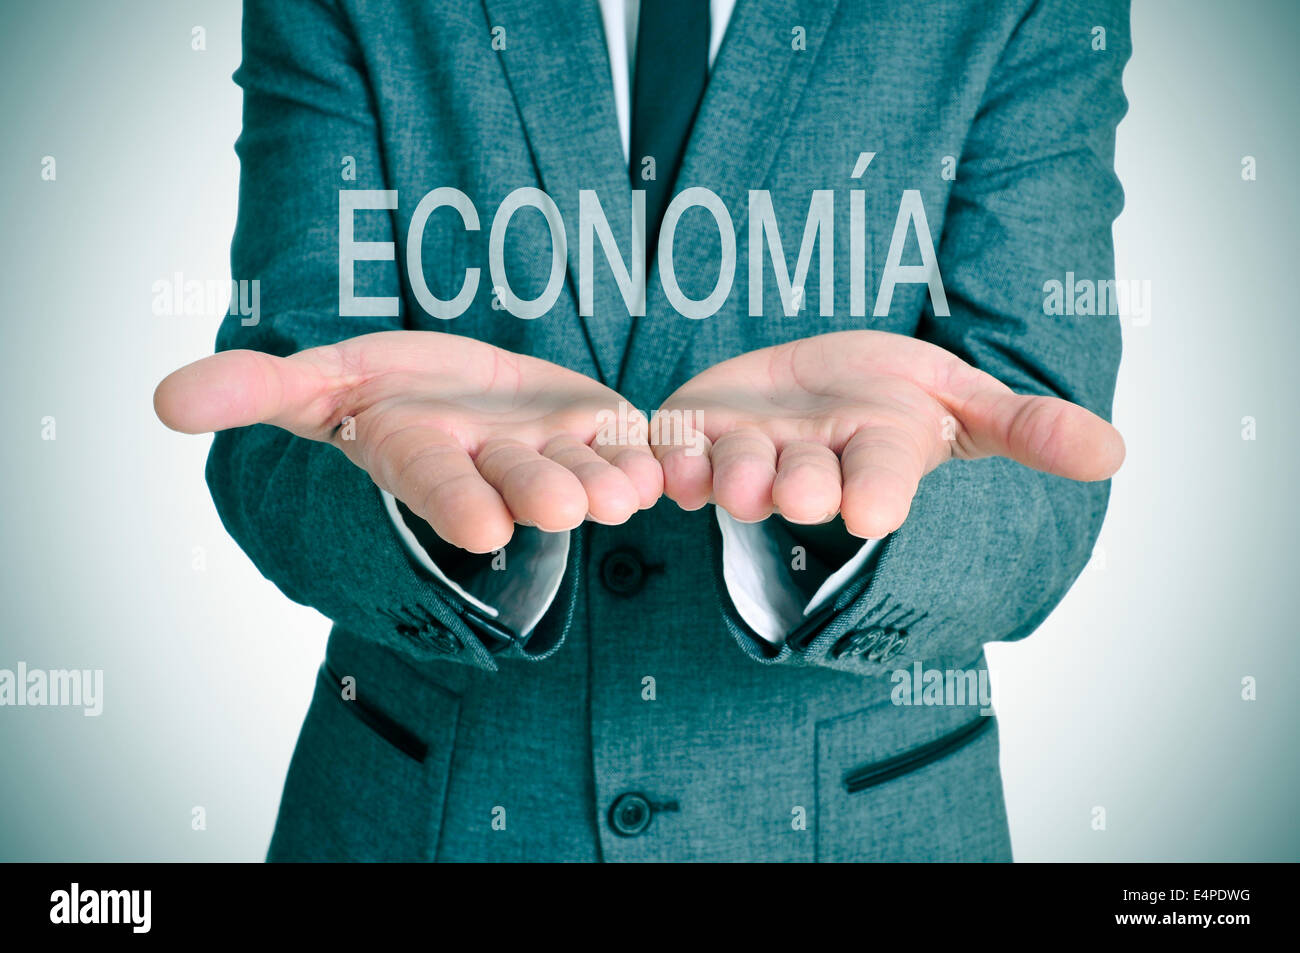 a businessman with the word economia, economy in spanish, in his hands - Stock Image